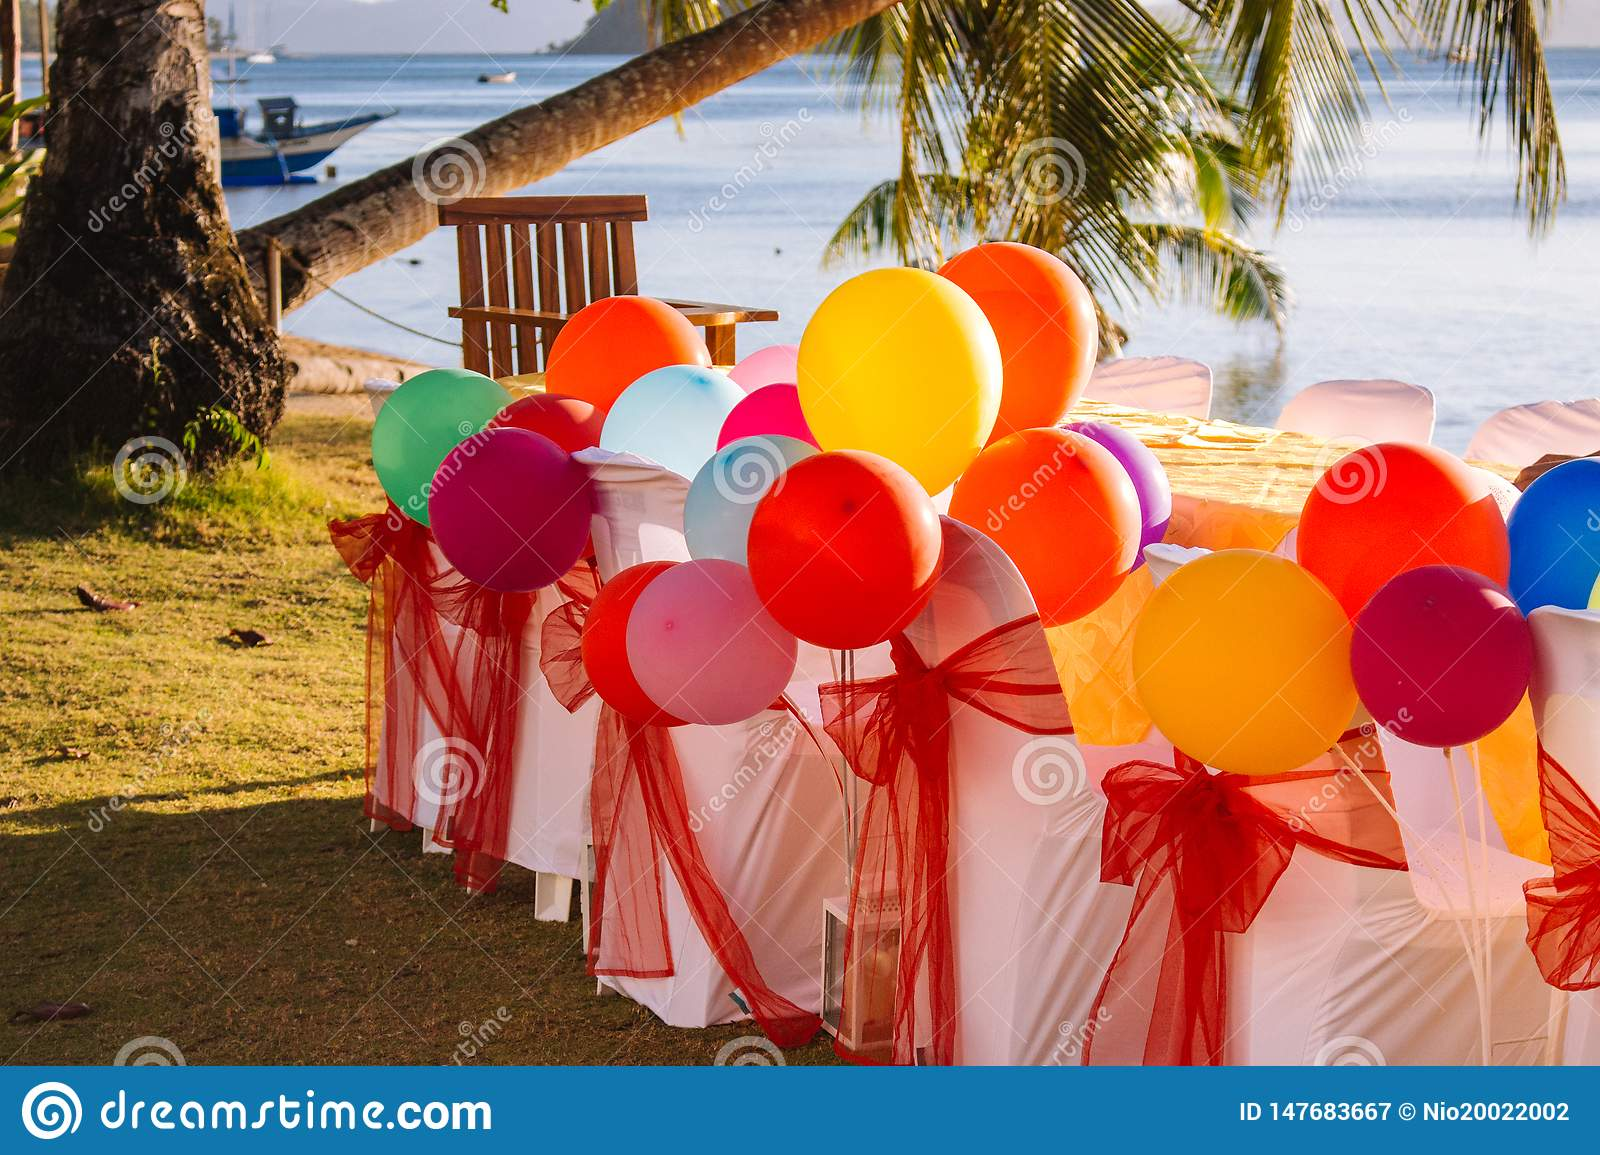 Festive table with colorful balloons on beach background with palm tree and boat. Happy birthday celebration concept.